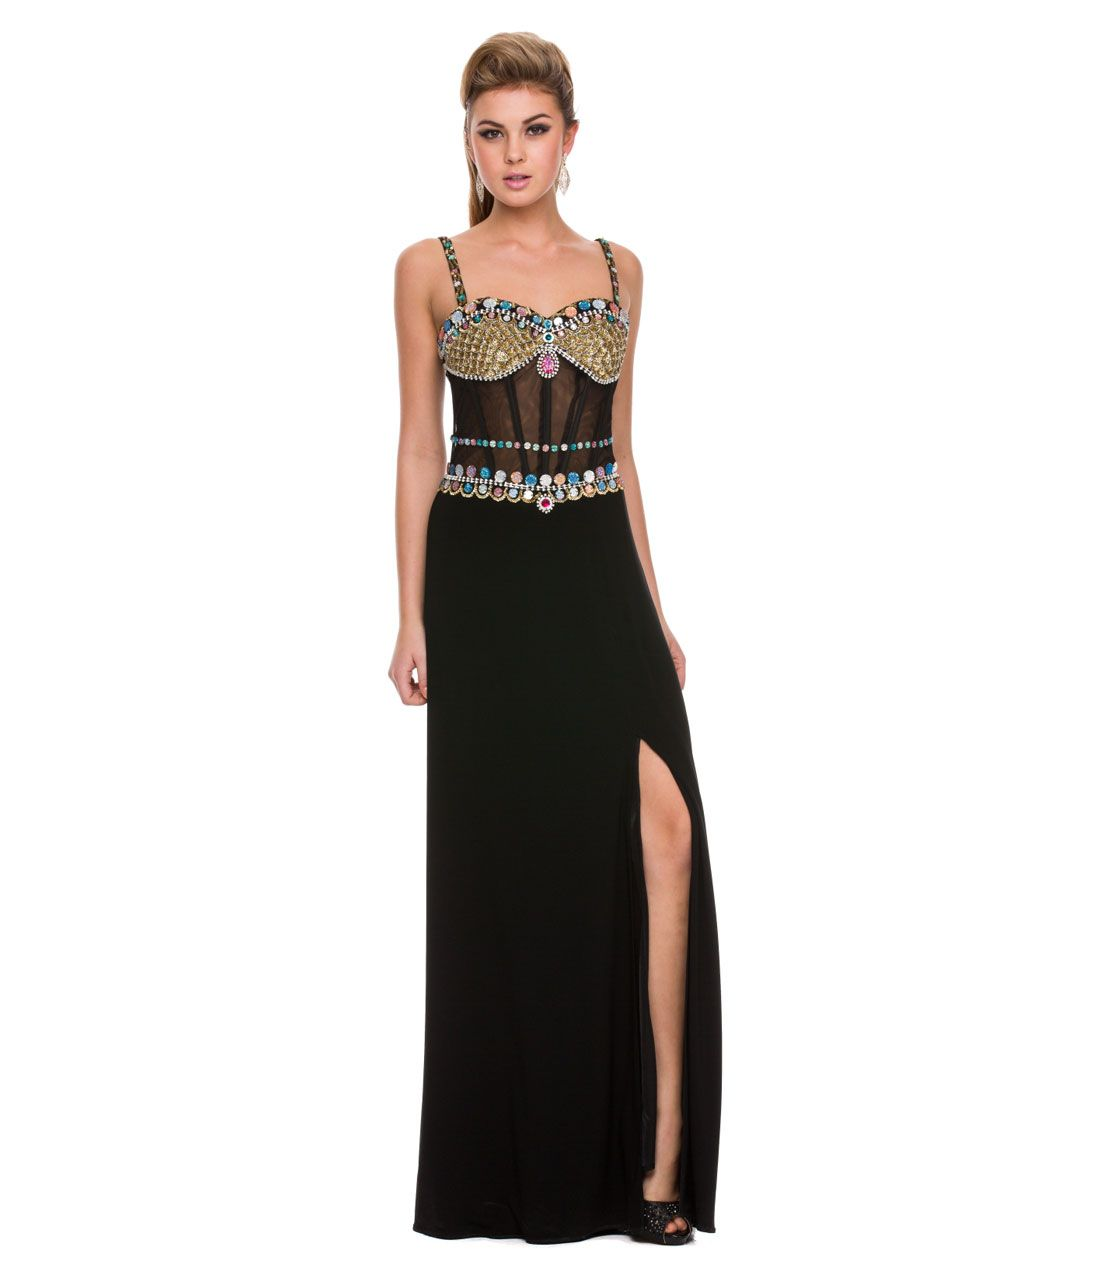 100 + Great Gatsby Prom Dresses for Sale | 1920s style, Prom and 1920s